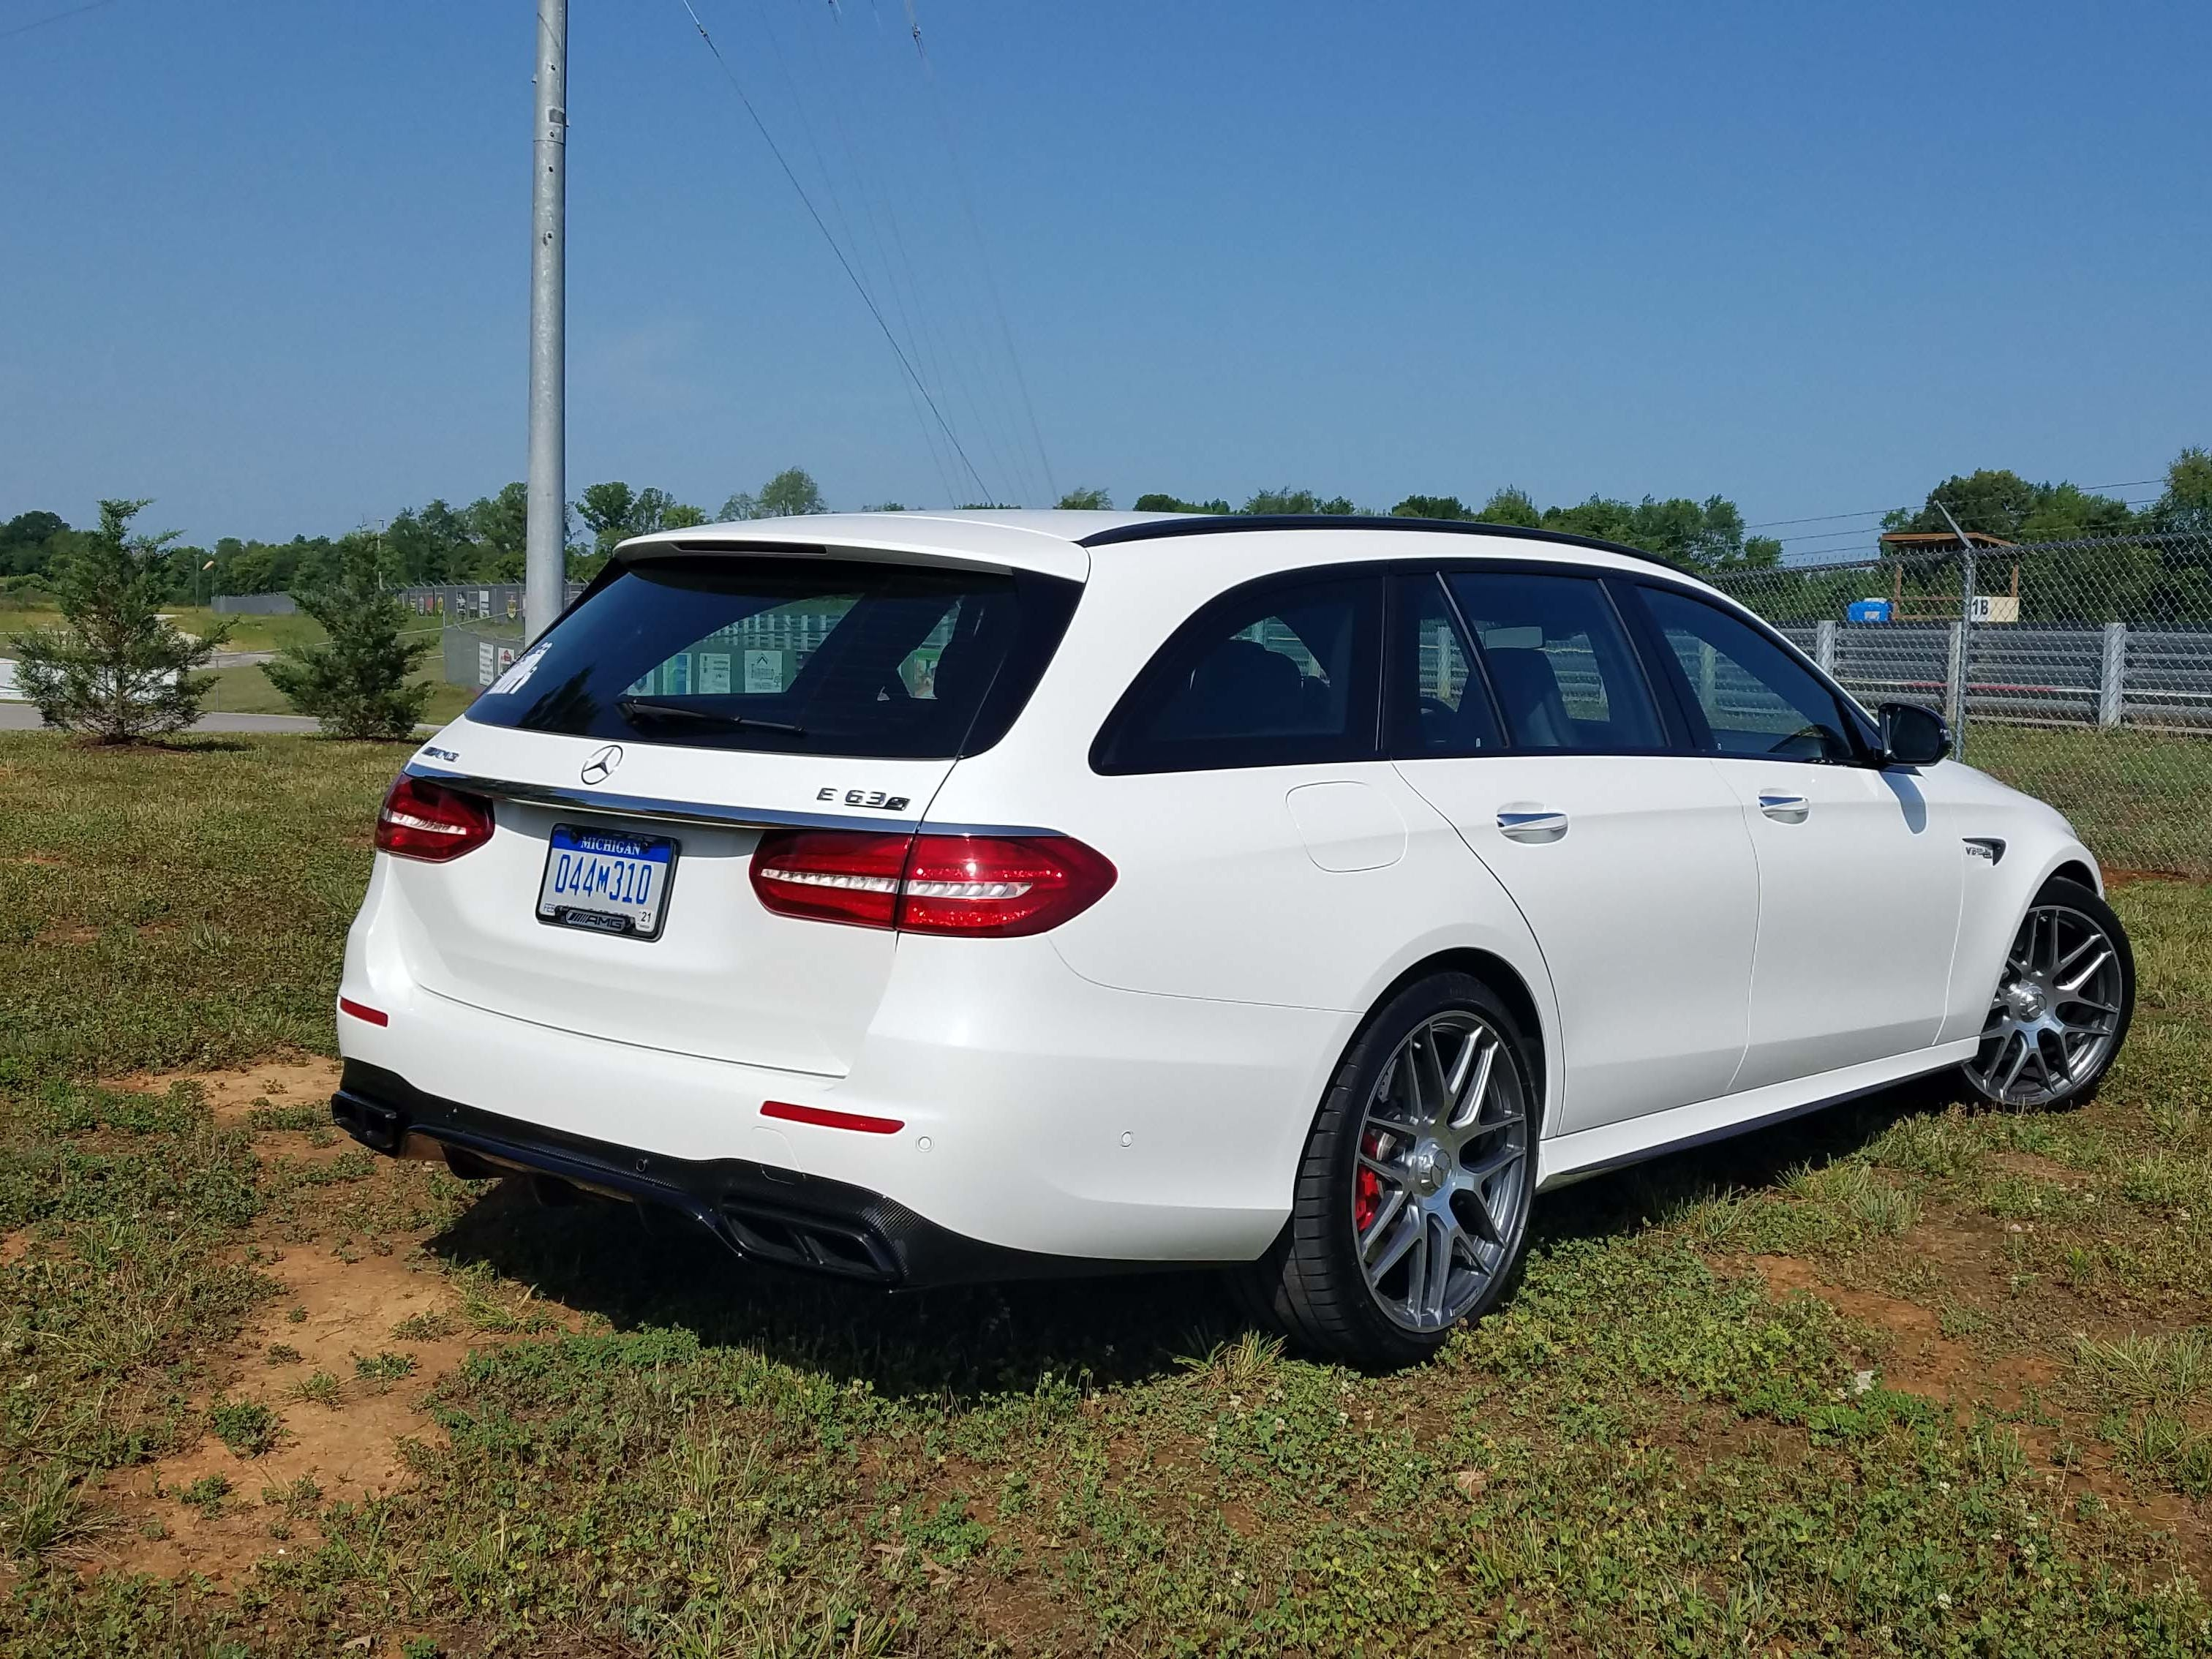 Not your average station wagon. For north of $100K, a Mercedes-AMG E63 S wagon buyer gets a 4,700-pound sled with the acceleration of a super car.